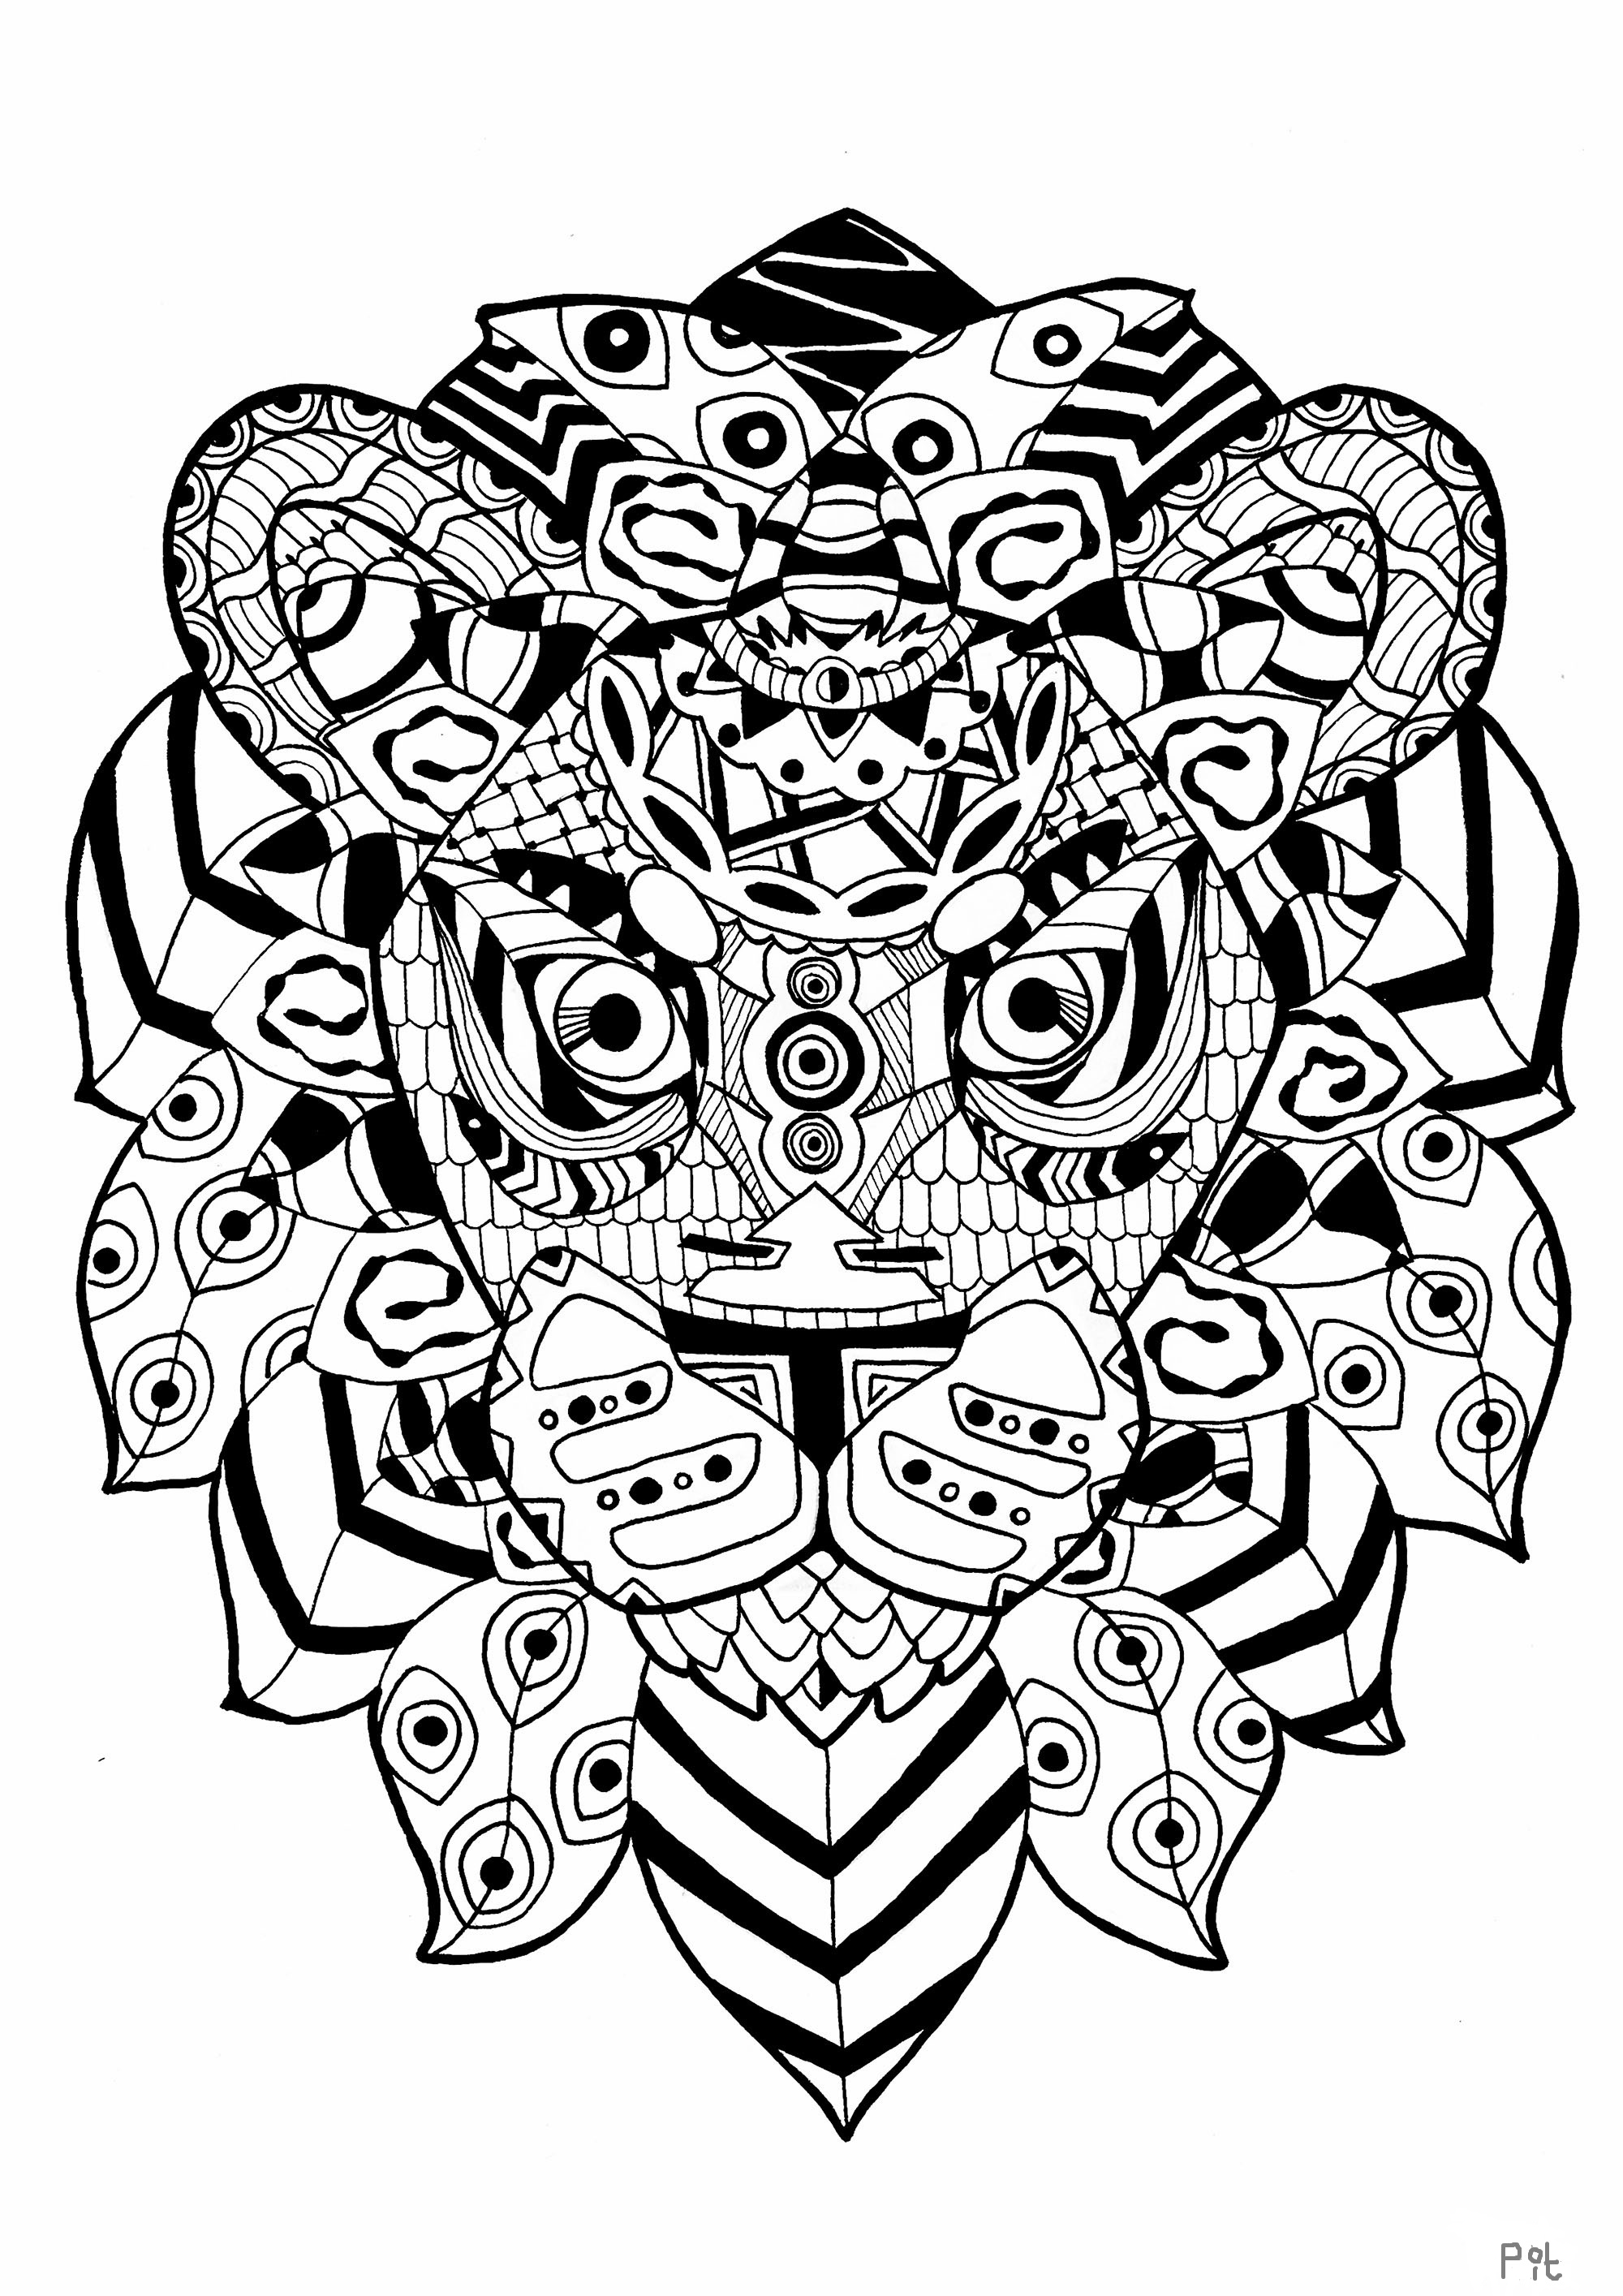 an impressive lion with a zentangle style from the gallery animals artist - Lion Coloring Pages